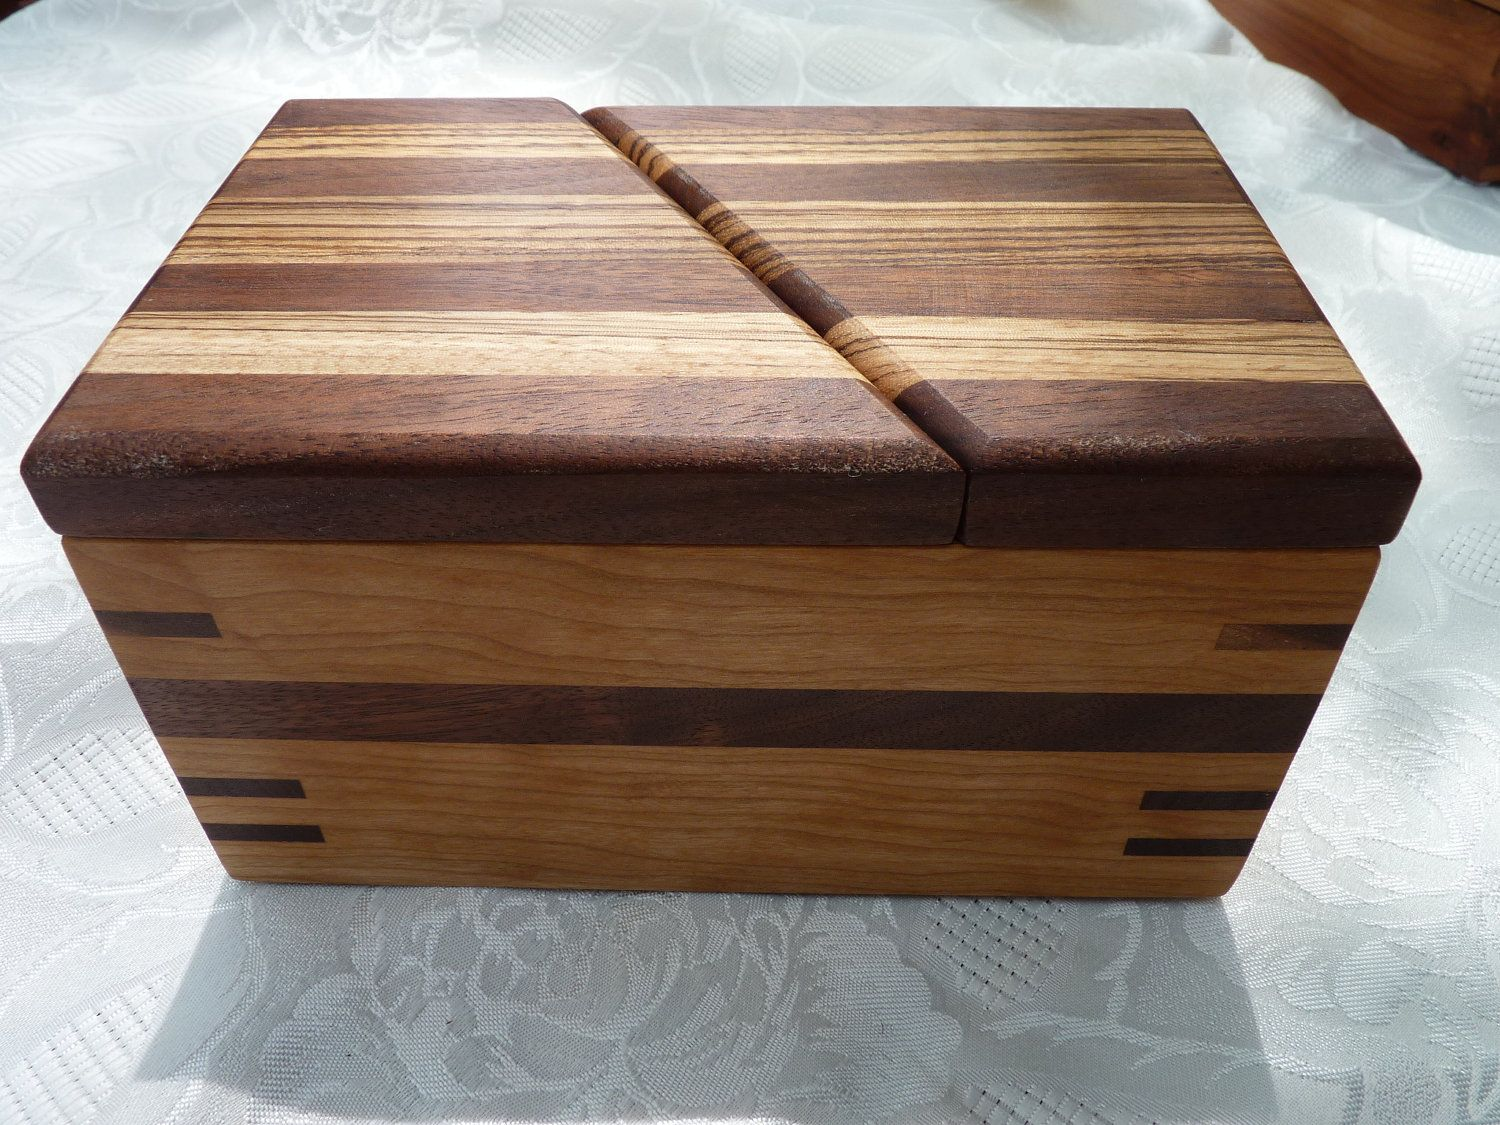 Handcrafted Wooden Jewelry Keepsake Box in Cherry with Swivel Top